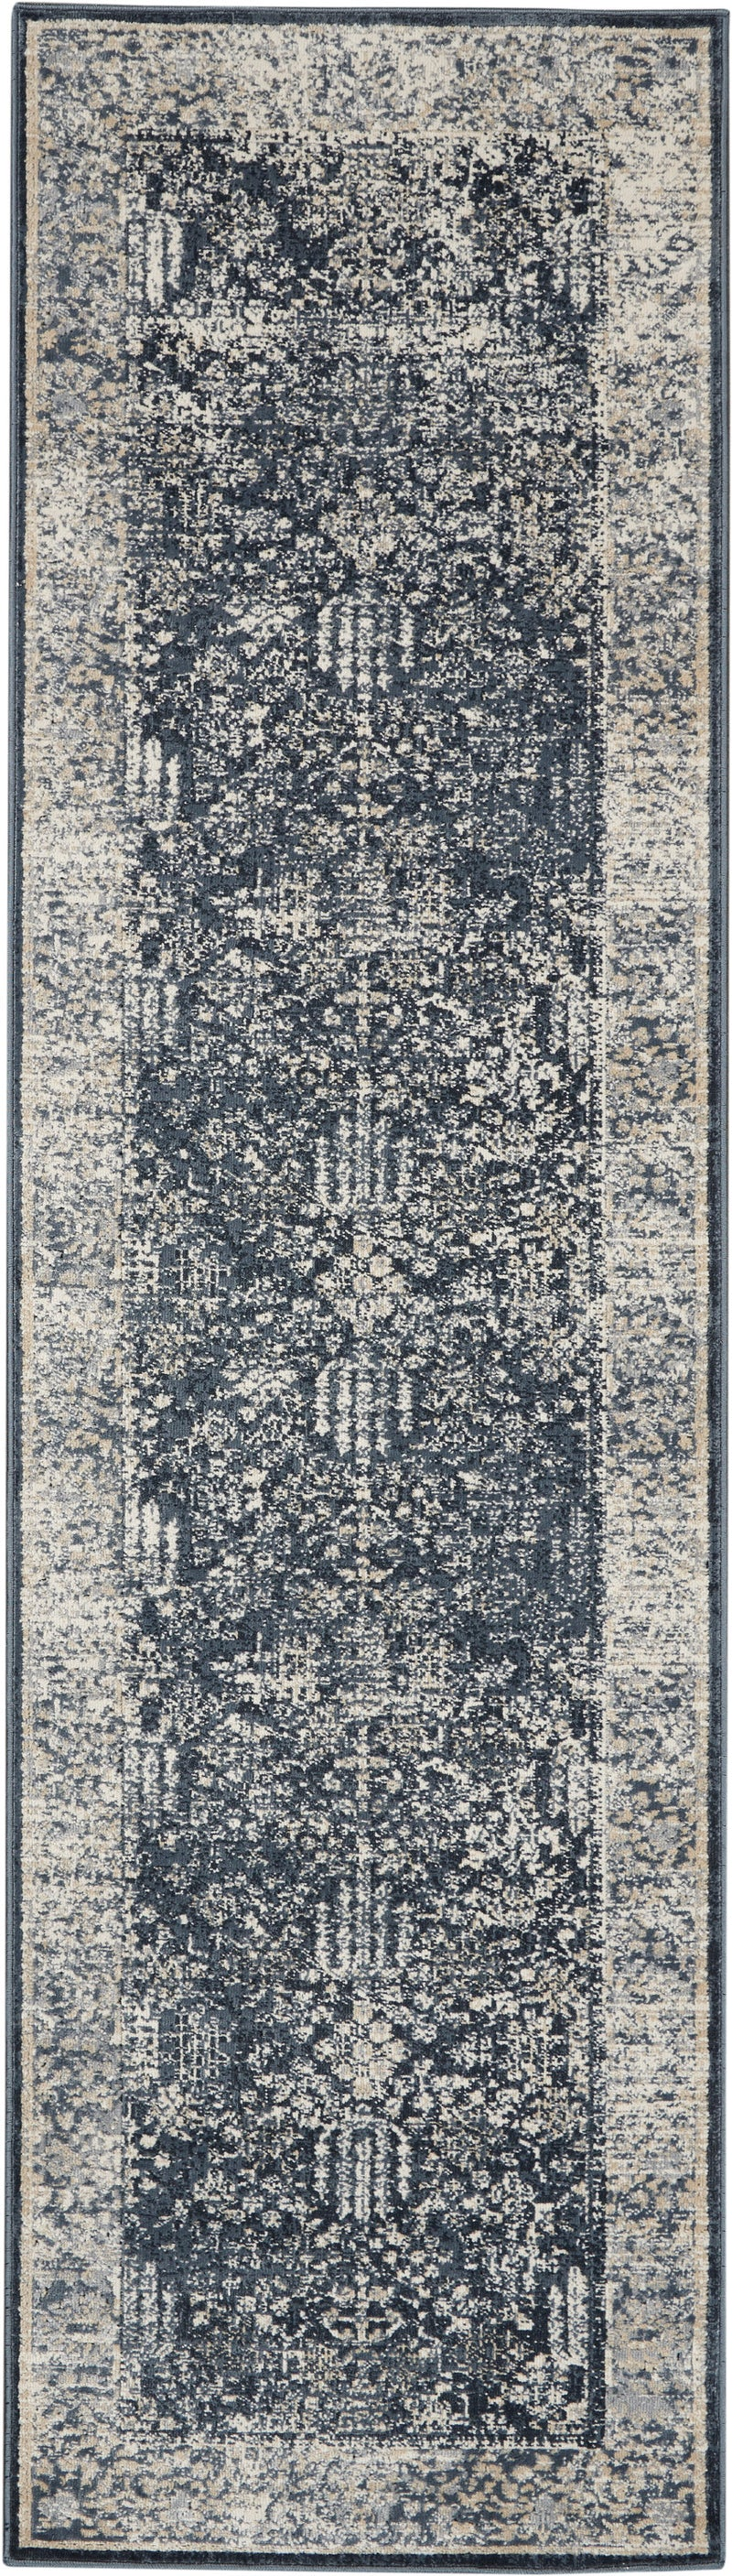 Malta by kathy ireland Home MAI12 Navy/Ivory 8' Runner Area Rug